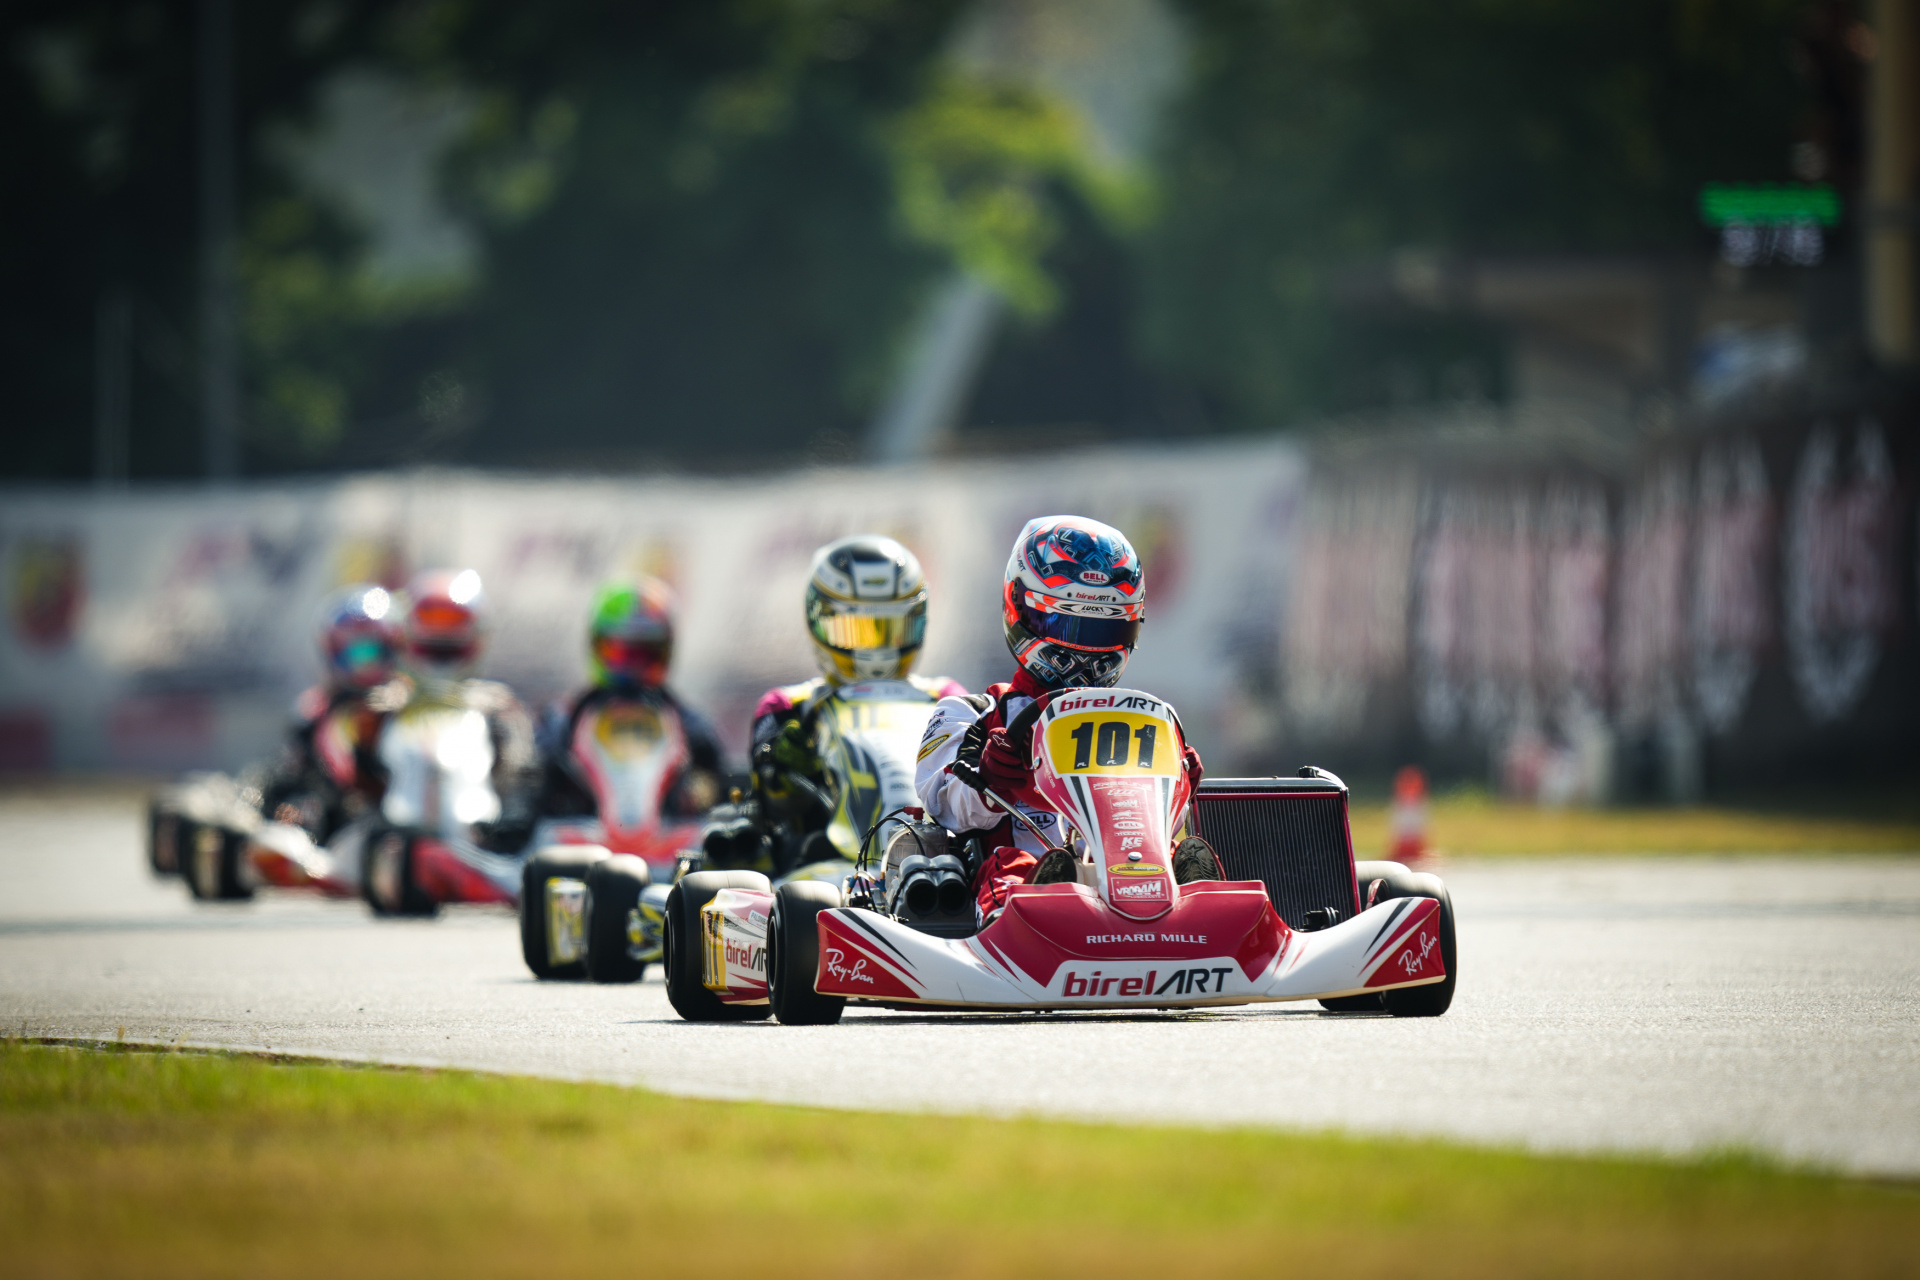 Palomba competes for the WSK Open Cup in Lonato